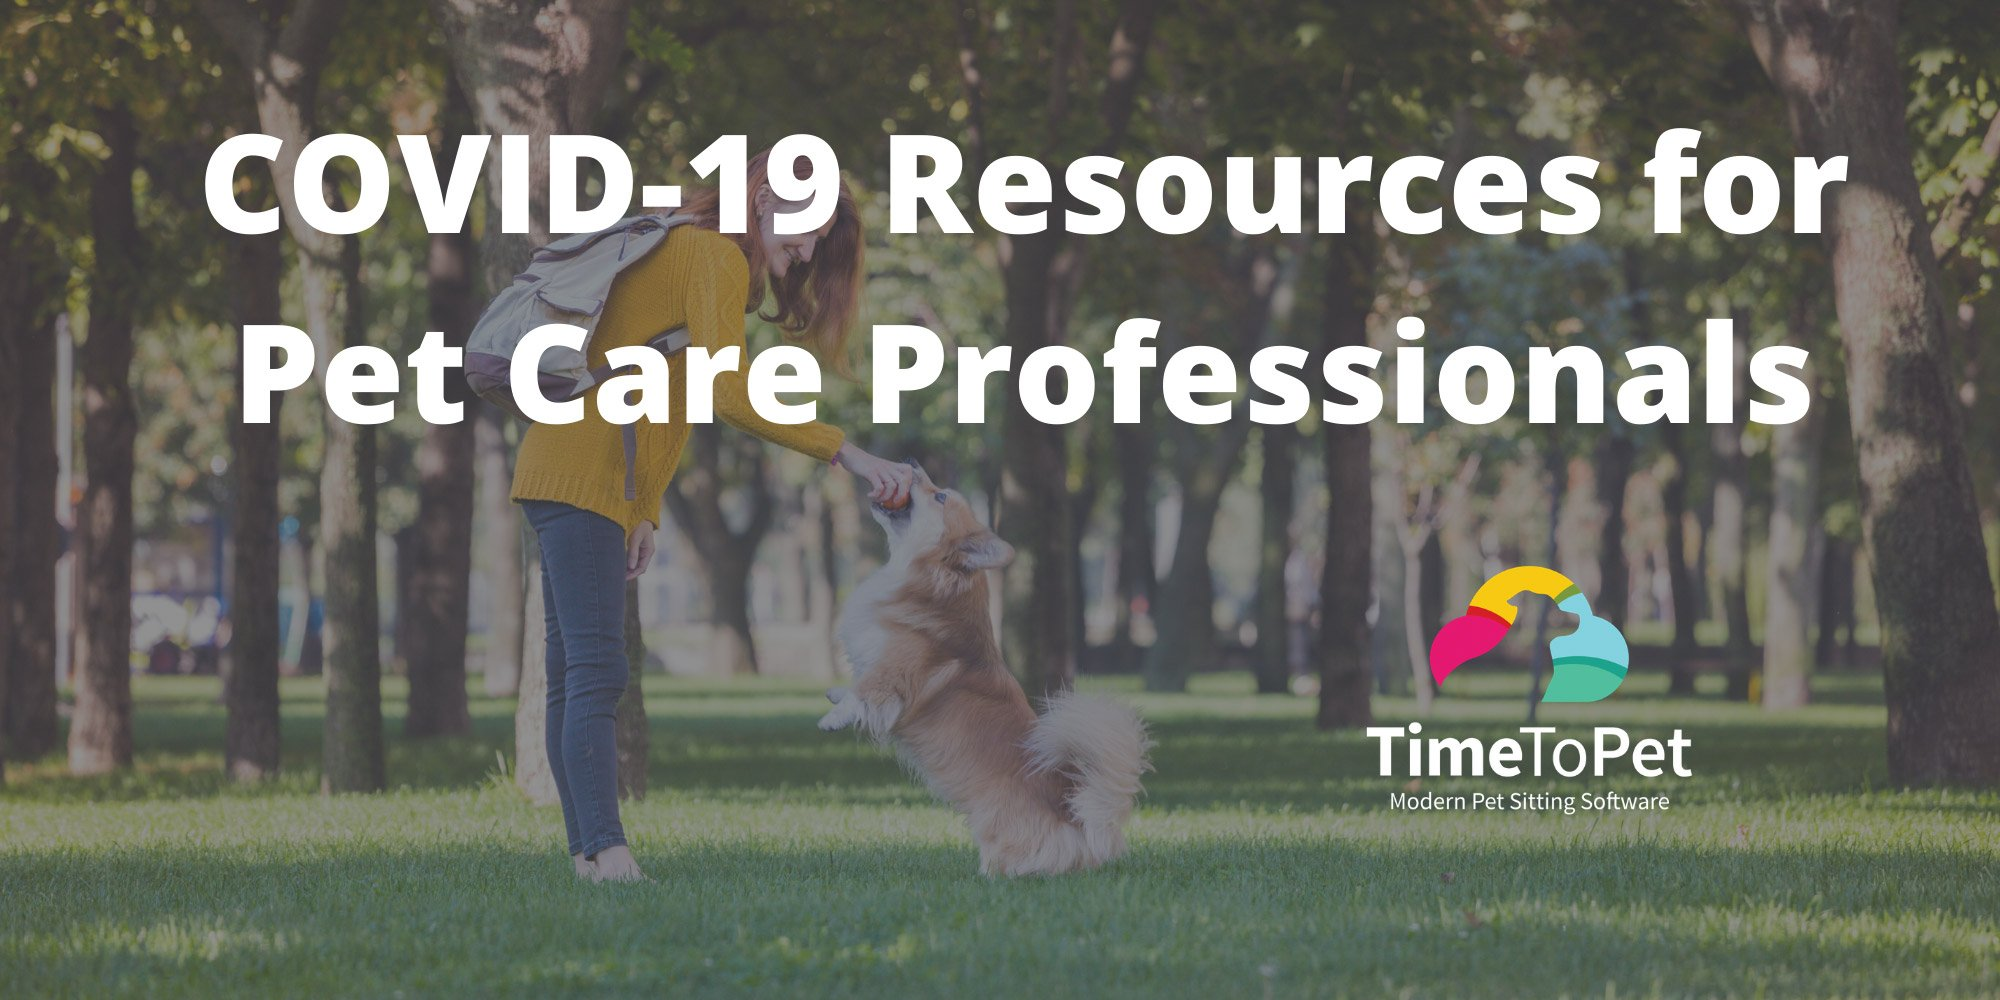 COVID-19-Resources-for-Pet-Care-Professionals.jpg